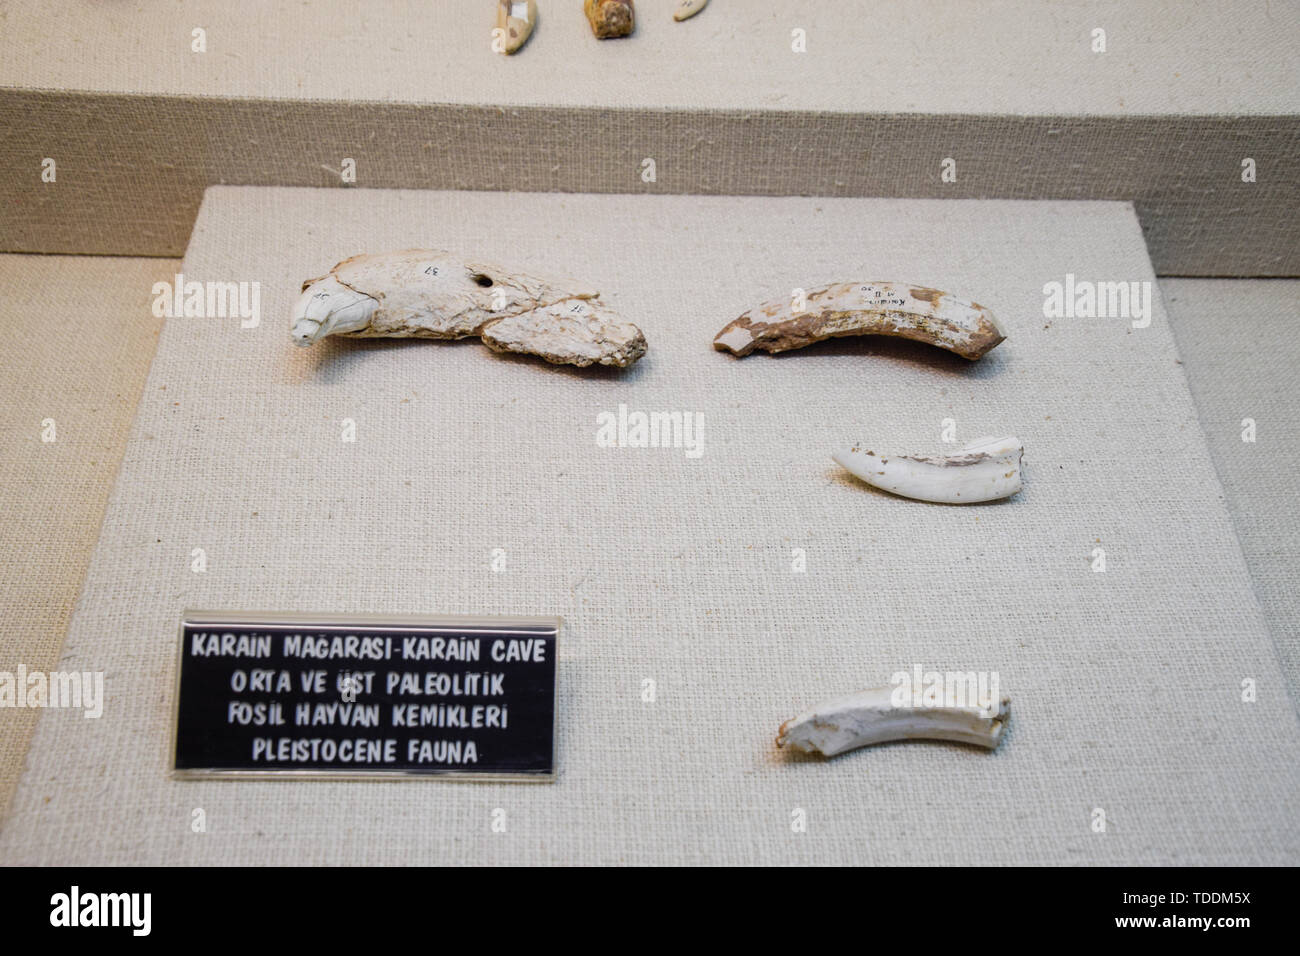 Antalya, Turkey - May 19, 2019: Exhibits of the Antalya Museum of Antiquities, stone scrapers and knives and pottery. - Stock Image